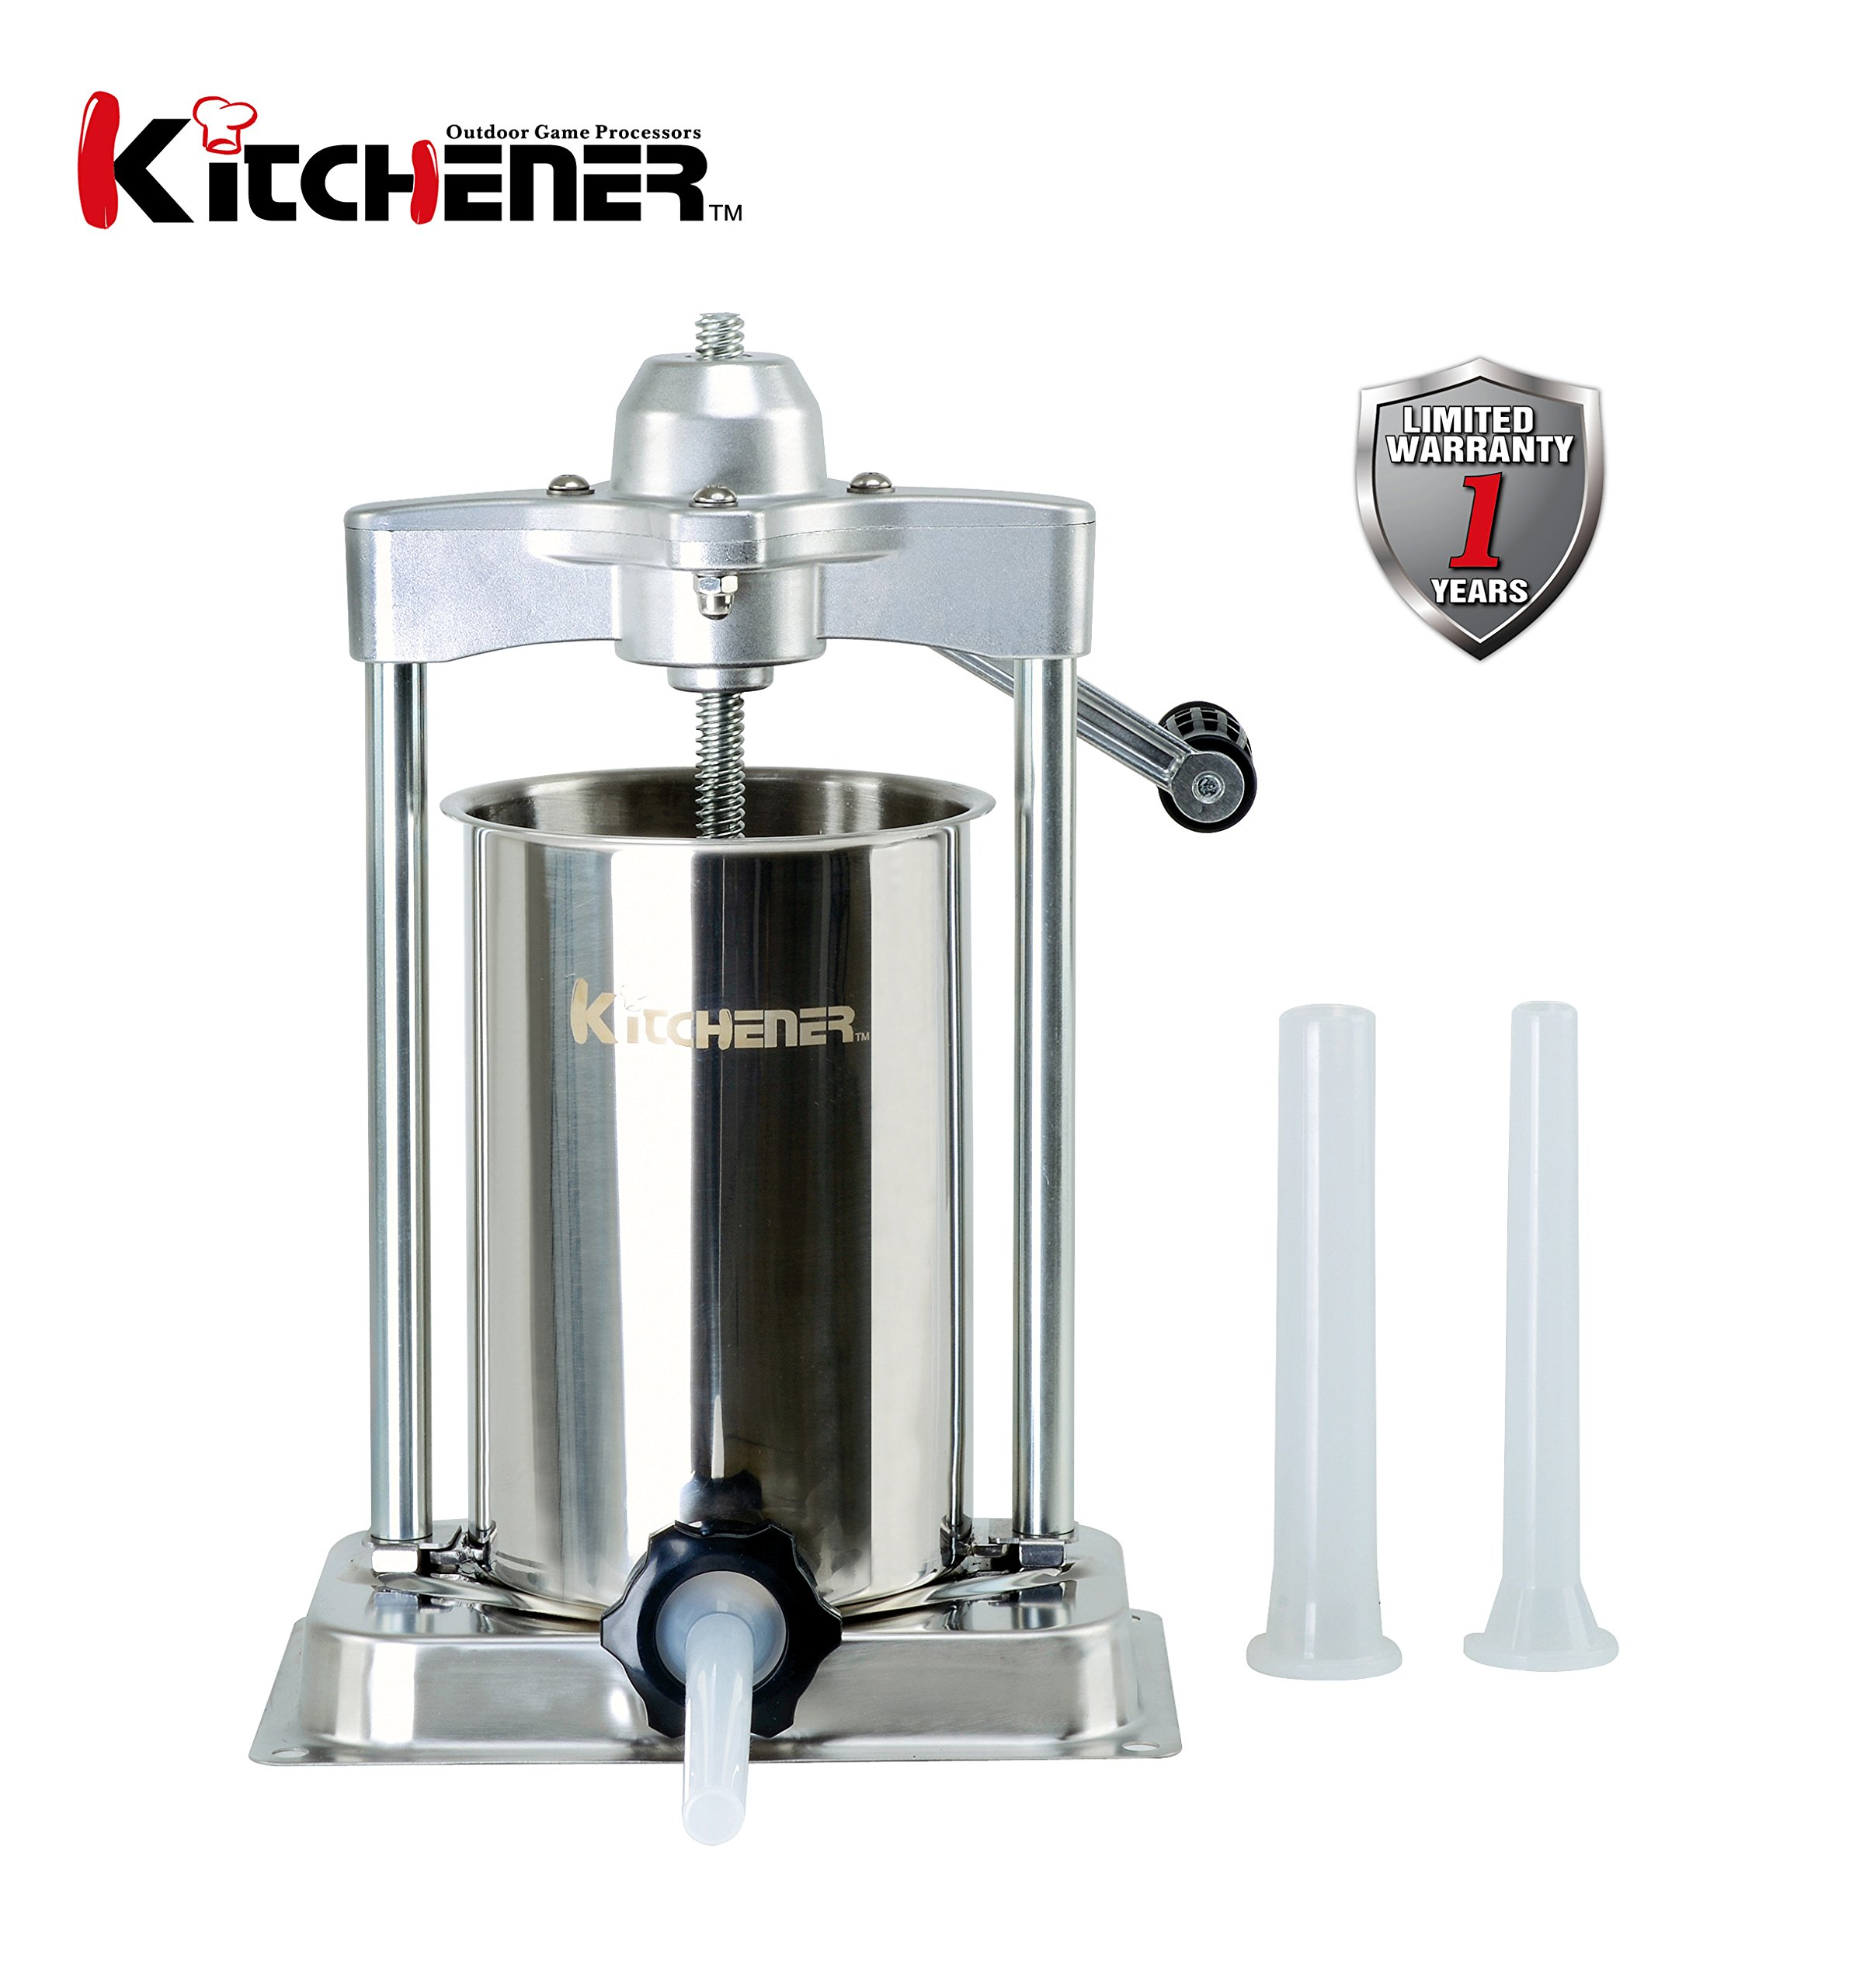 KITCHENER- Heavy Duty Stainless Steel Vertical Sausage Stuffer/Filler/Maker with 3 Stuffing Tubes (Heavy Duty: 10-Lbs)